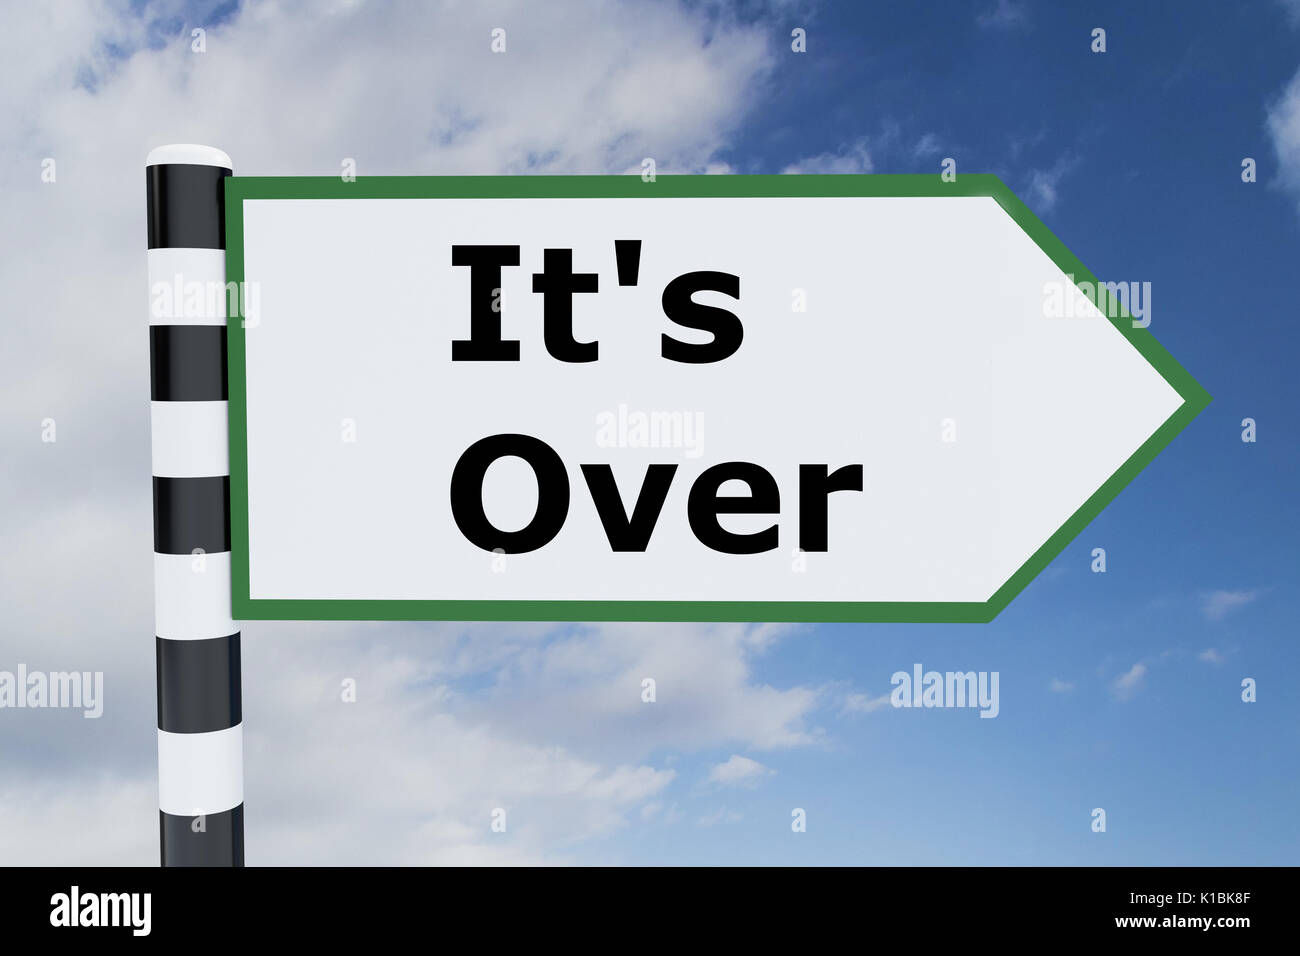 Render illustration of It's Over title on road sign - Stock Image